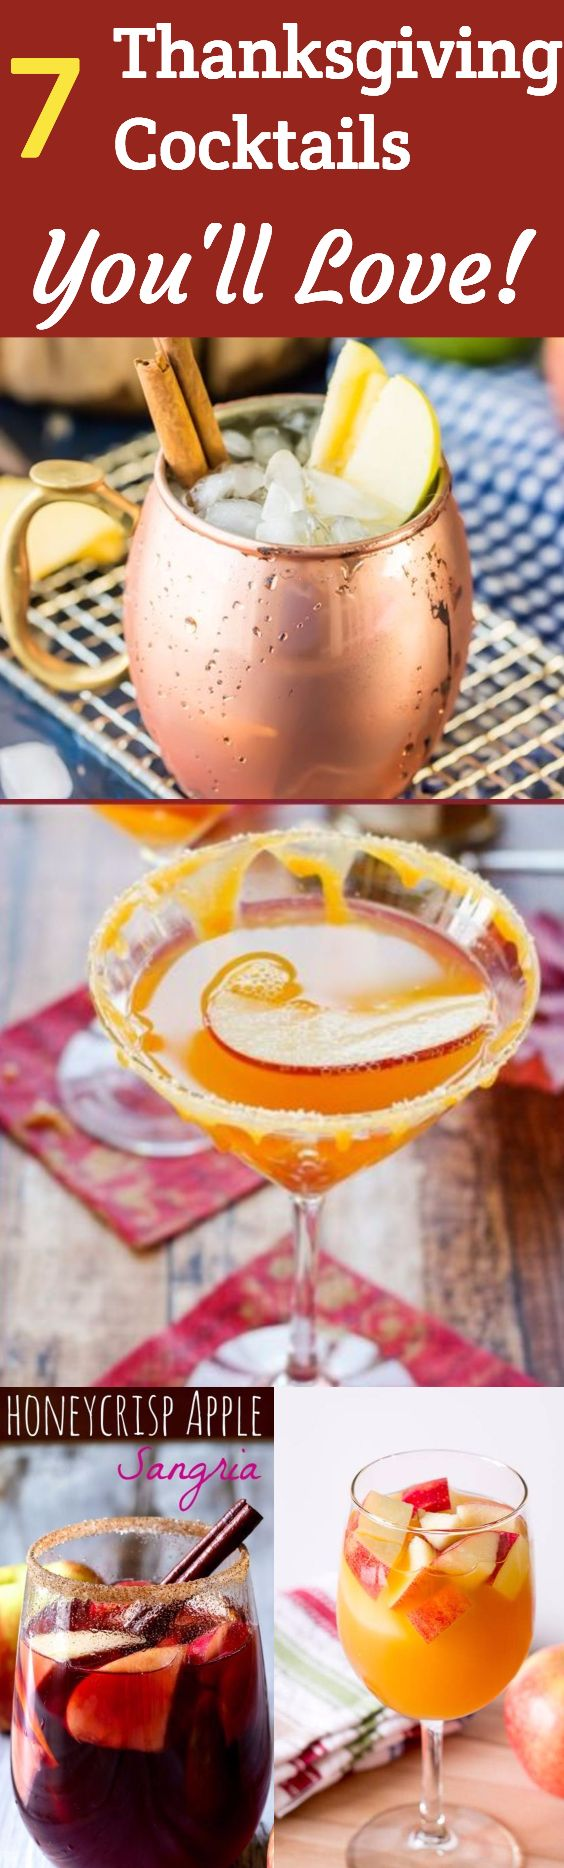 Thanksgiving Cocktails - Impress your guests with these delightful Thanksgiving cocktails! They're the perfect autumn-themed drinks to have before or after the big meal. #ThanksgivingIdeas via @camdenmcl